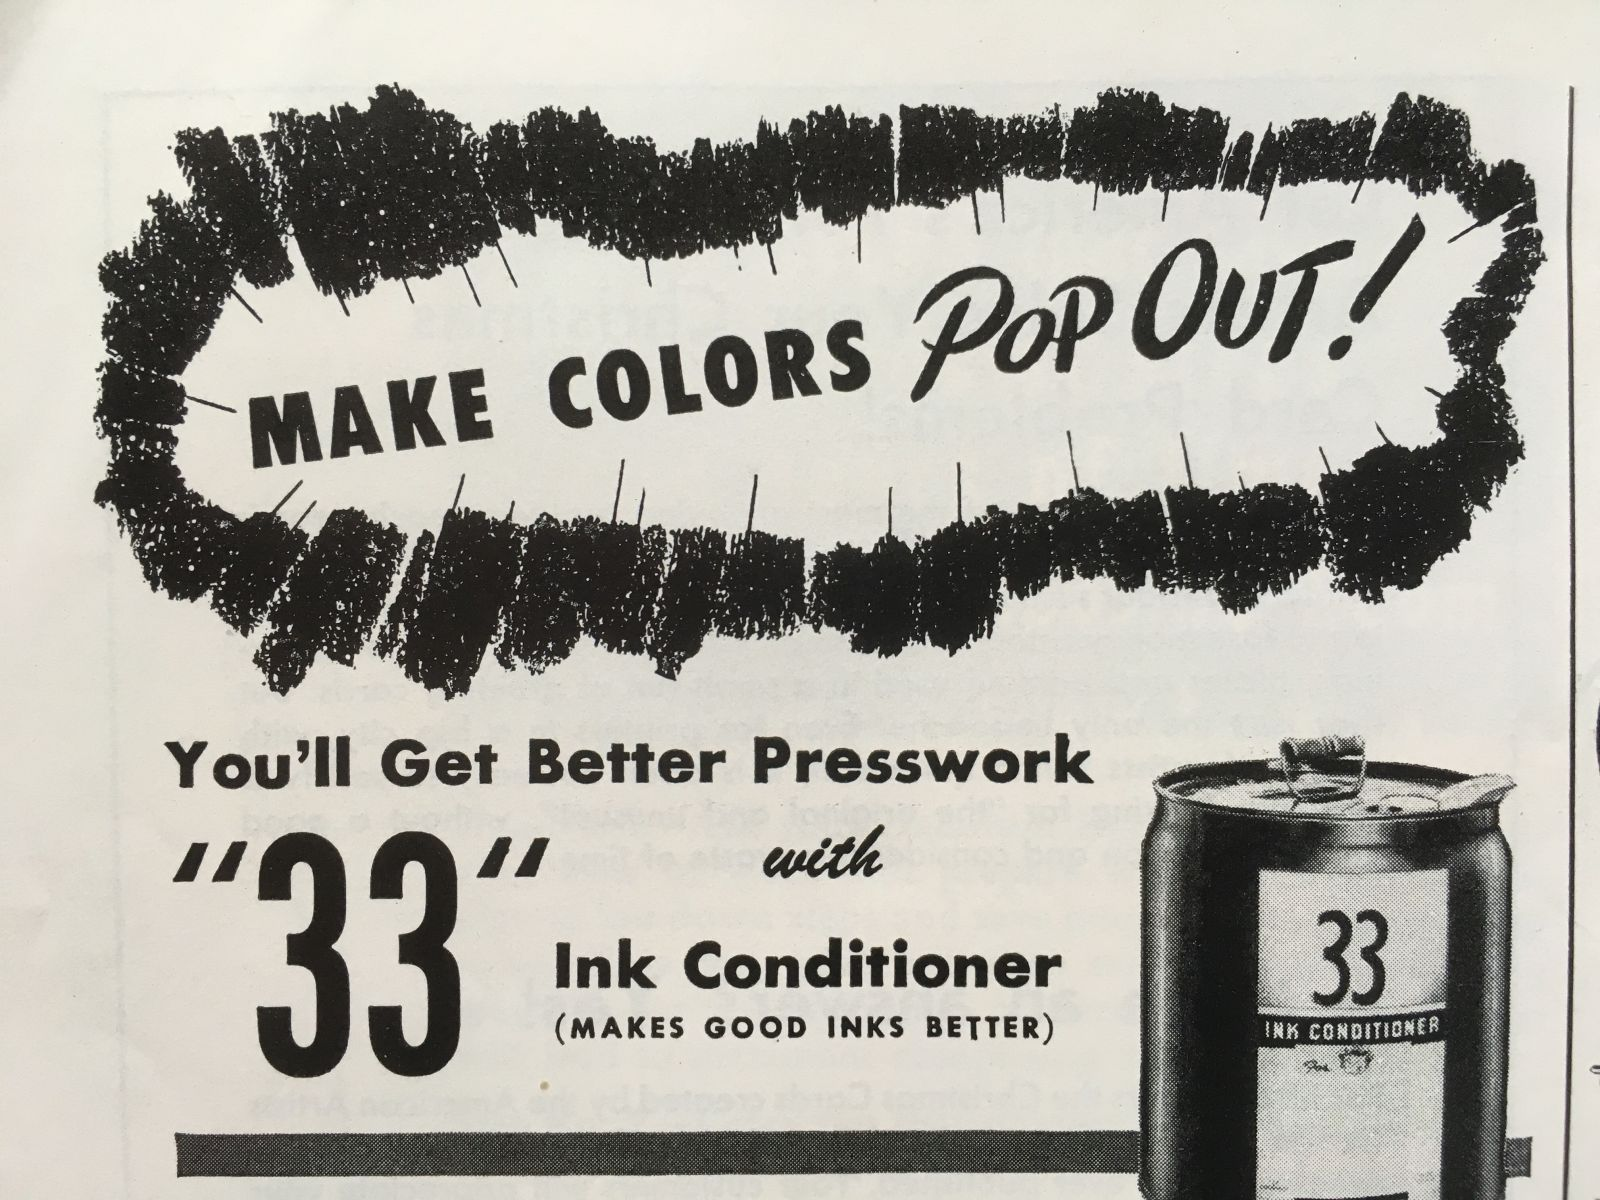 Central Compounding Co. ad: Make Colors Pop Out! | Flickr